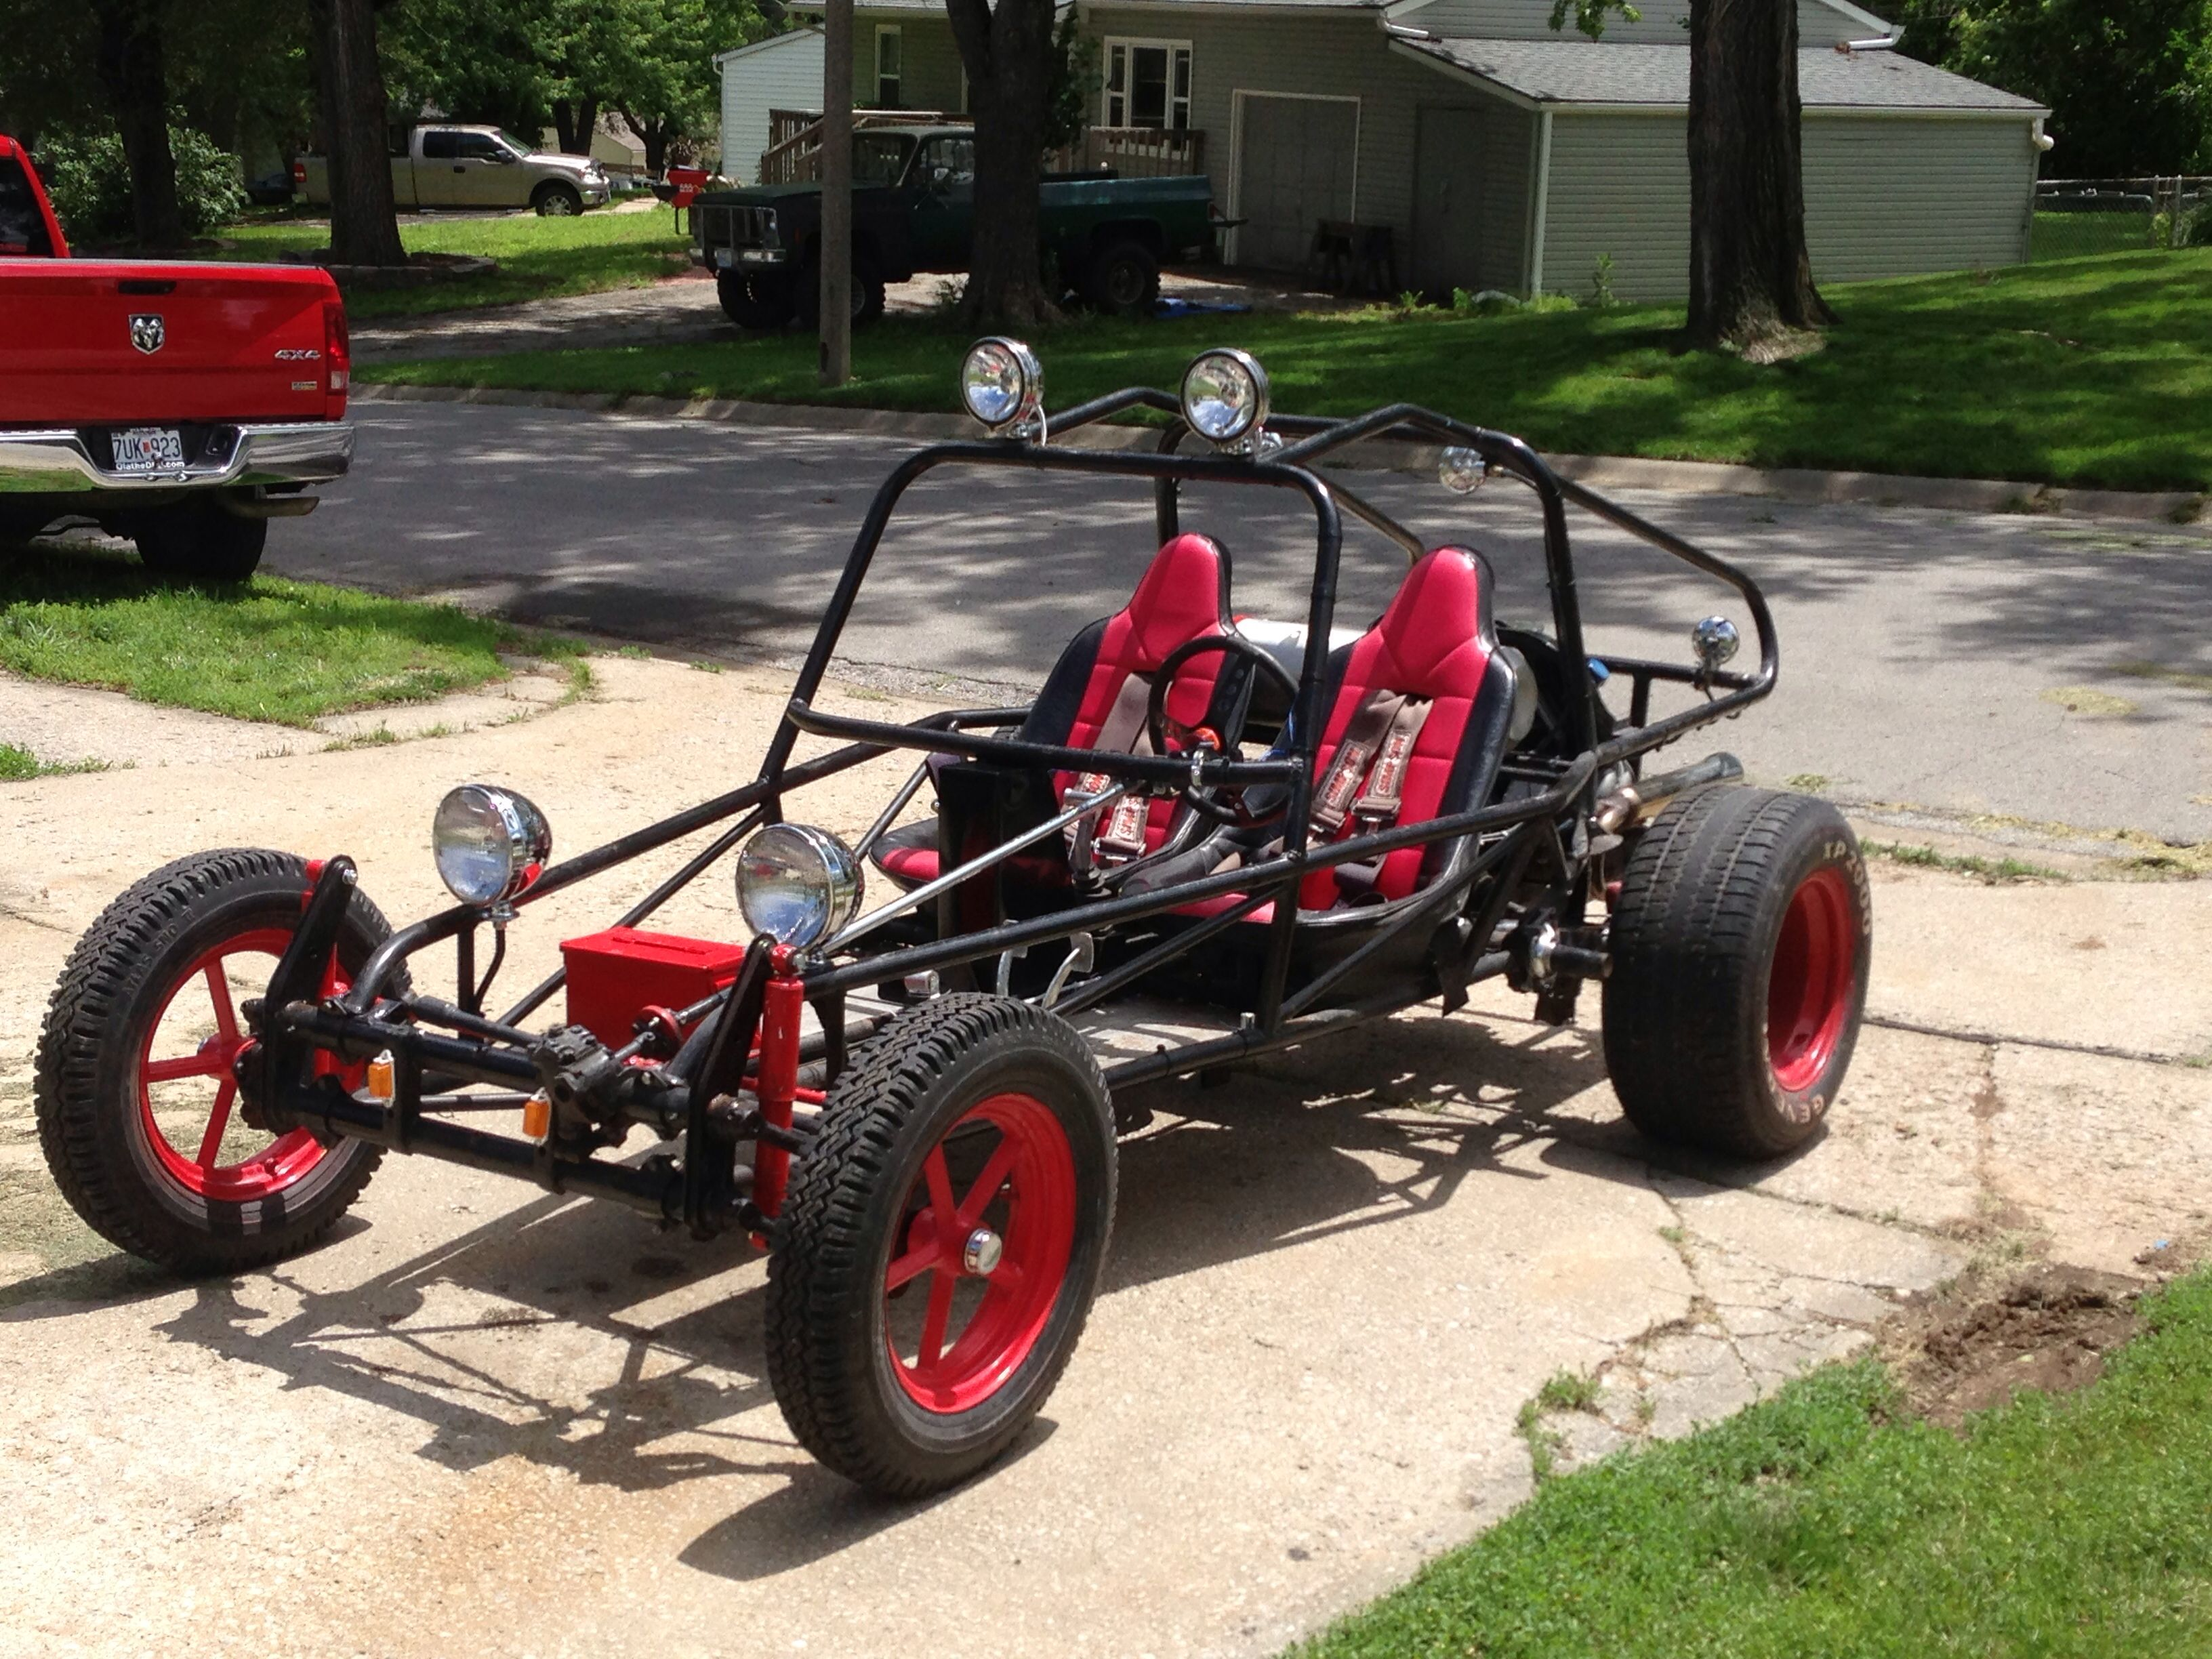 Vw 1600 dp , dune buggy , 2 year build | Dune buggy | Pinterest ...